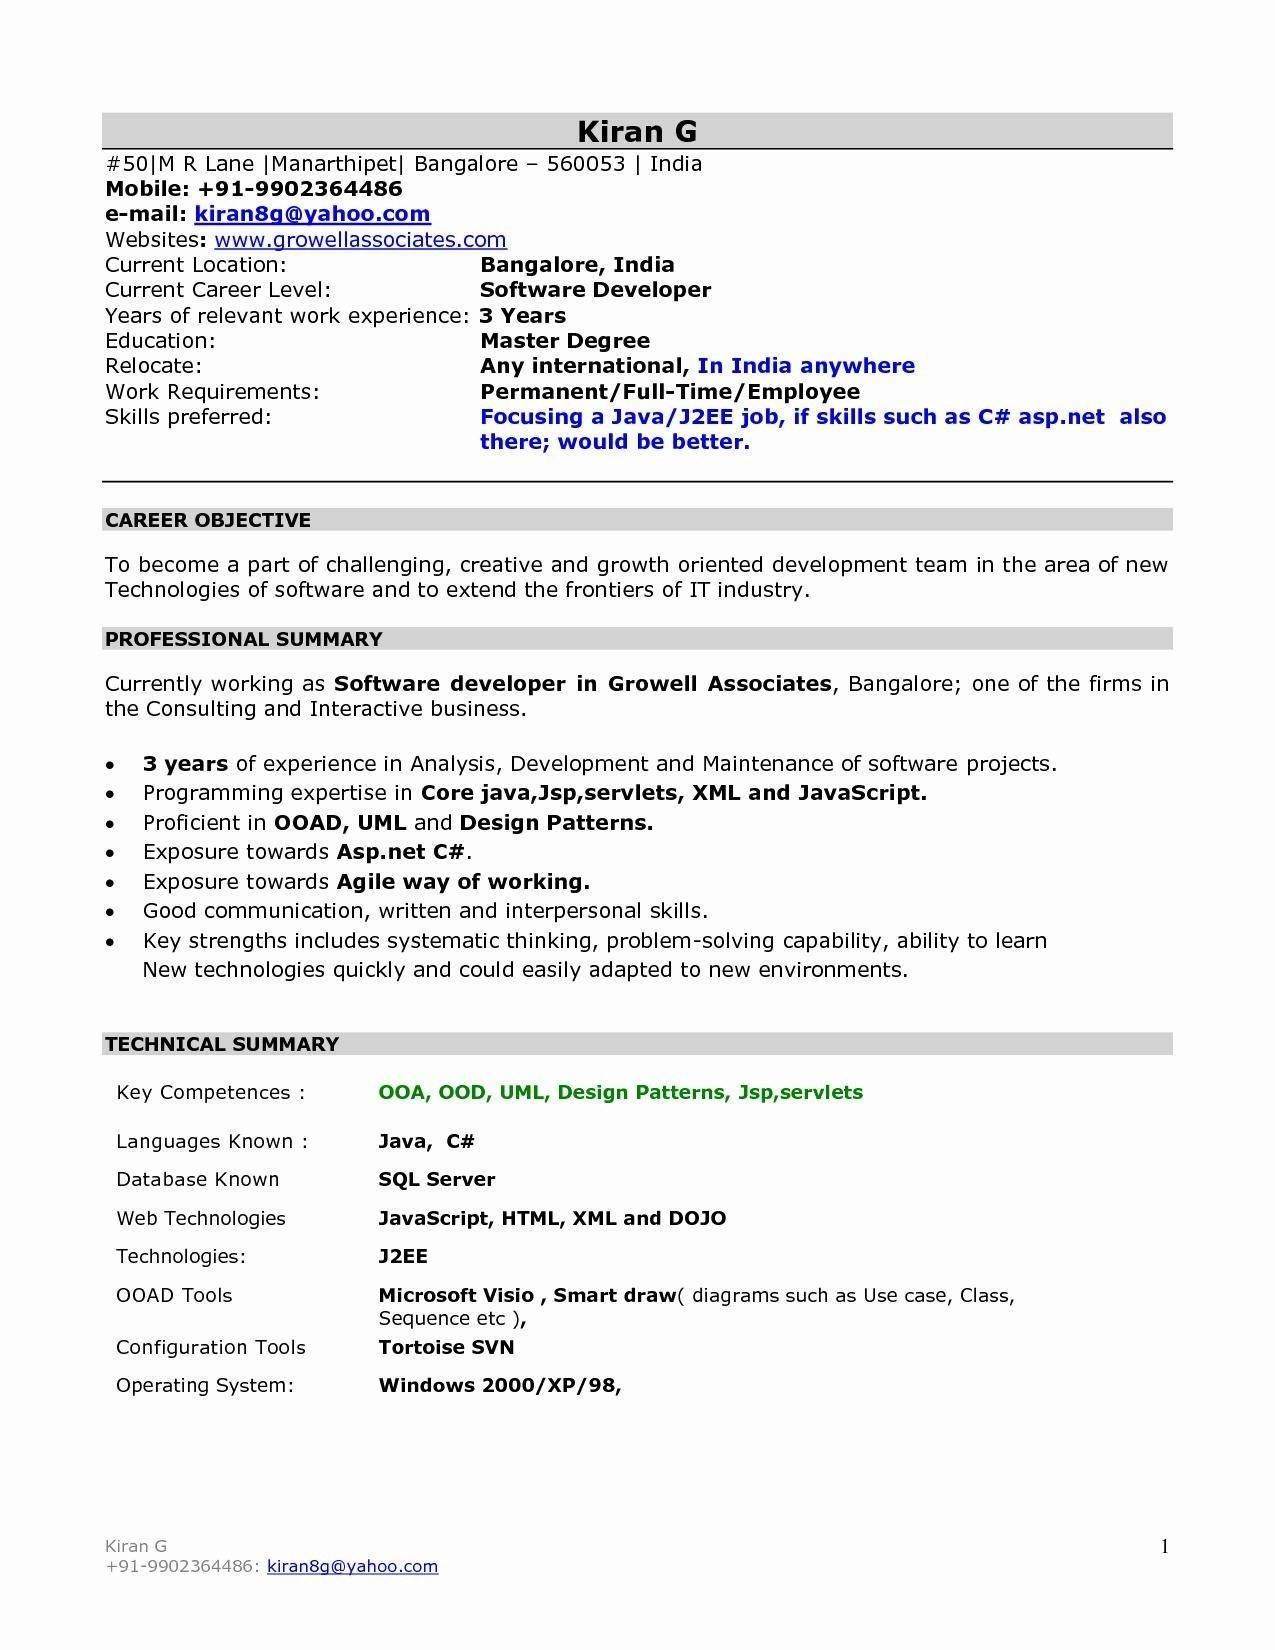 Resume Templates For Freshers Engineers Free Download